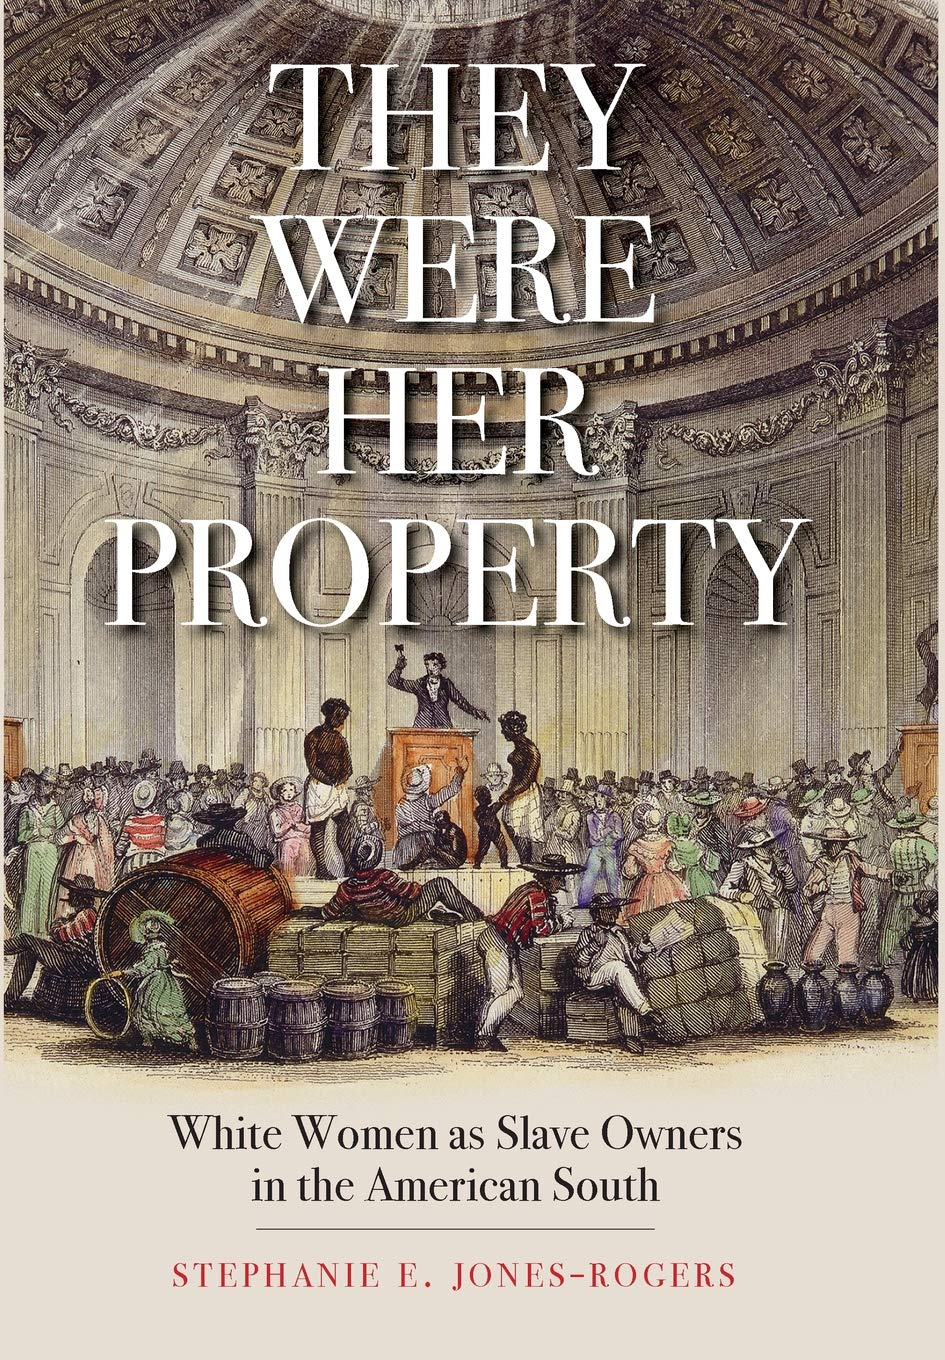 Image result for They Were Her Property: White Women as Slave Owners in the American South by Stephanie E. Jones-Rogers